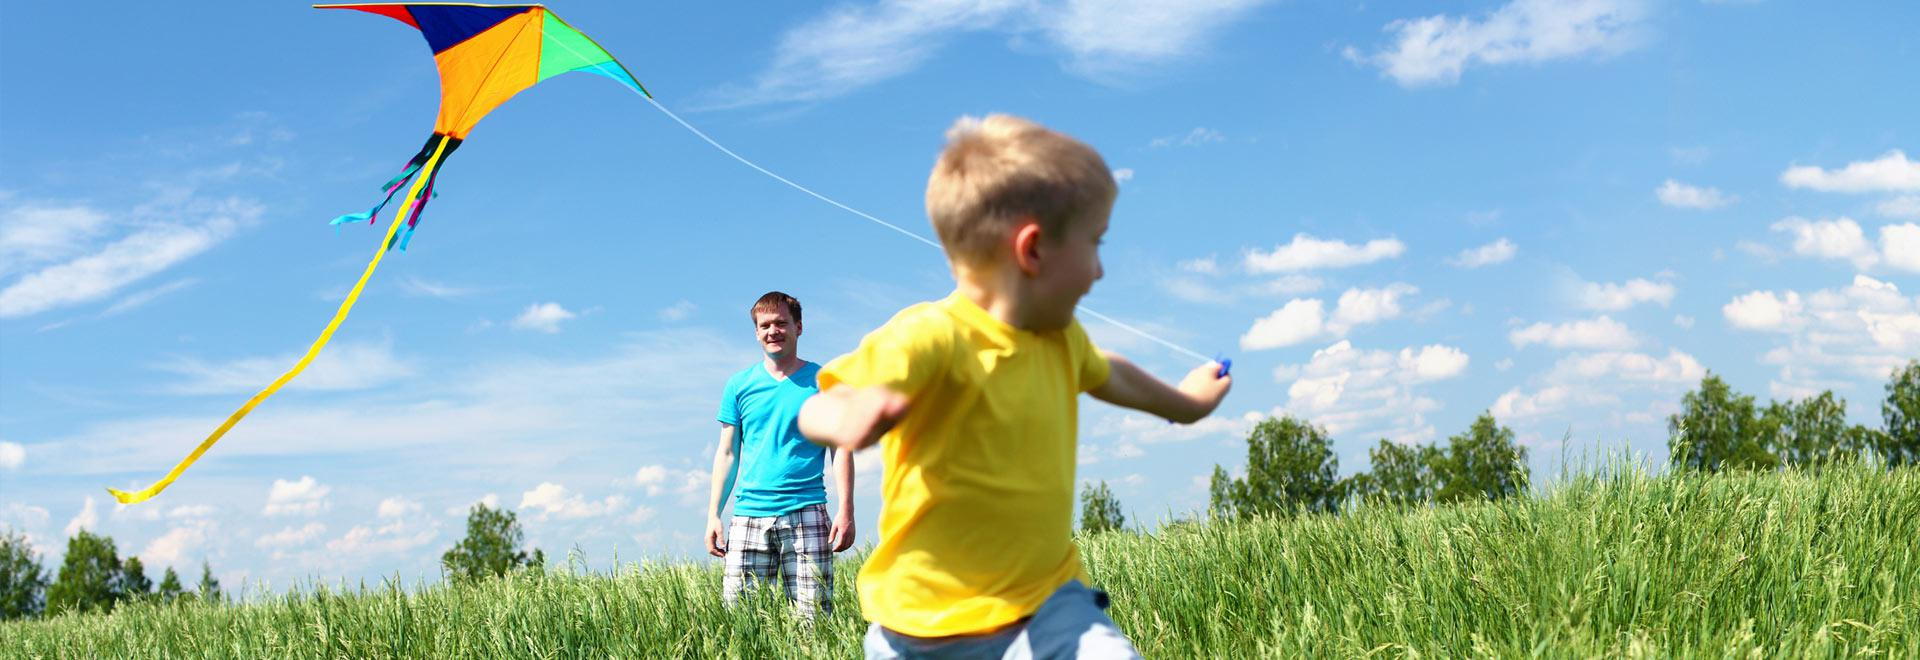 Kid with kite - slider element